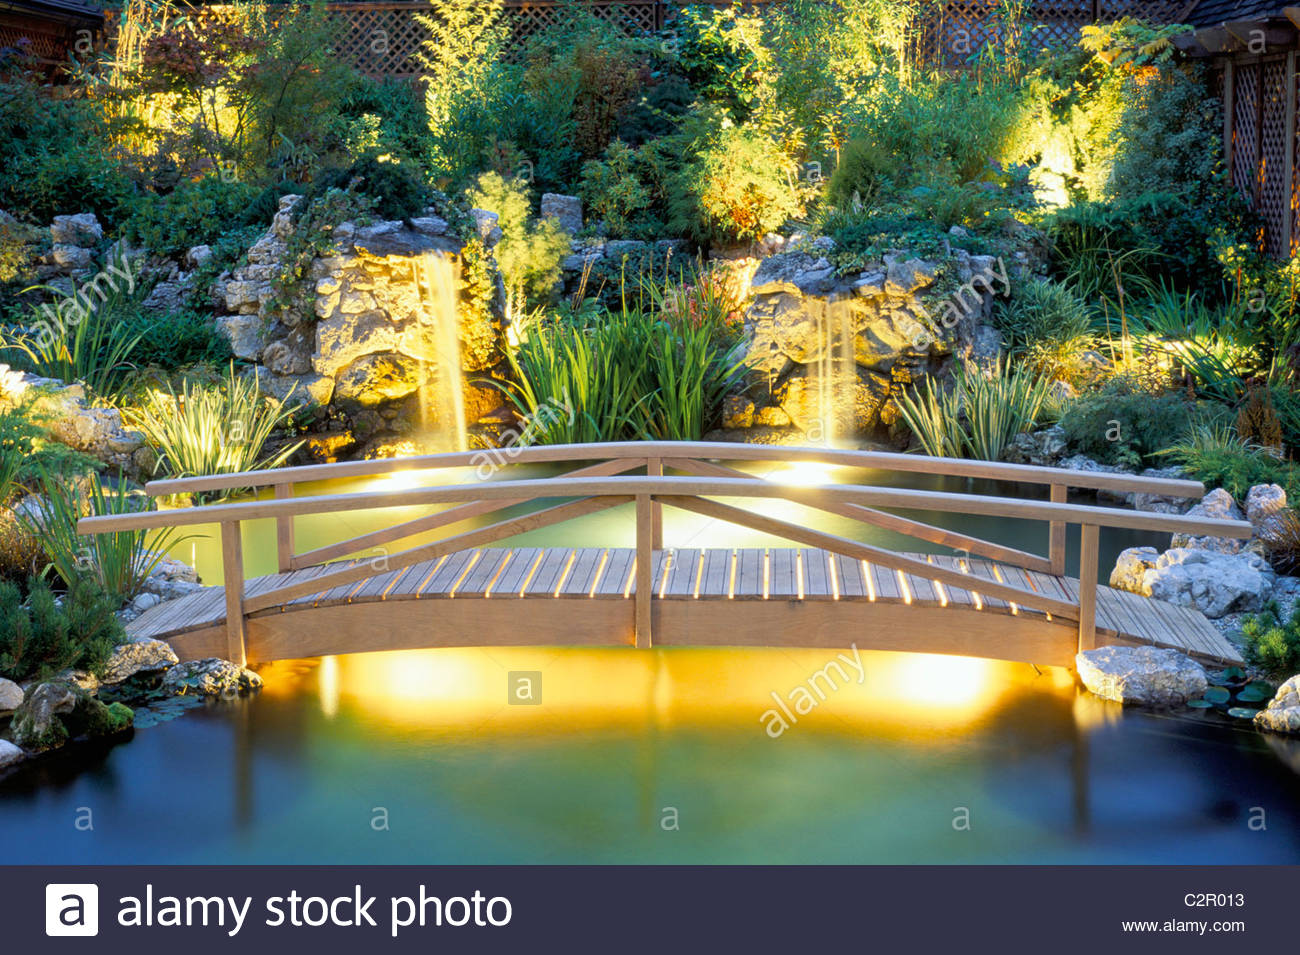 Wooden Bridge Over Koi Pond.lighting By Garden And Security Lighting.  Design By Natural And Oriental Water Gardens